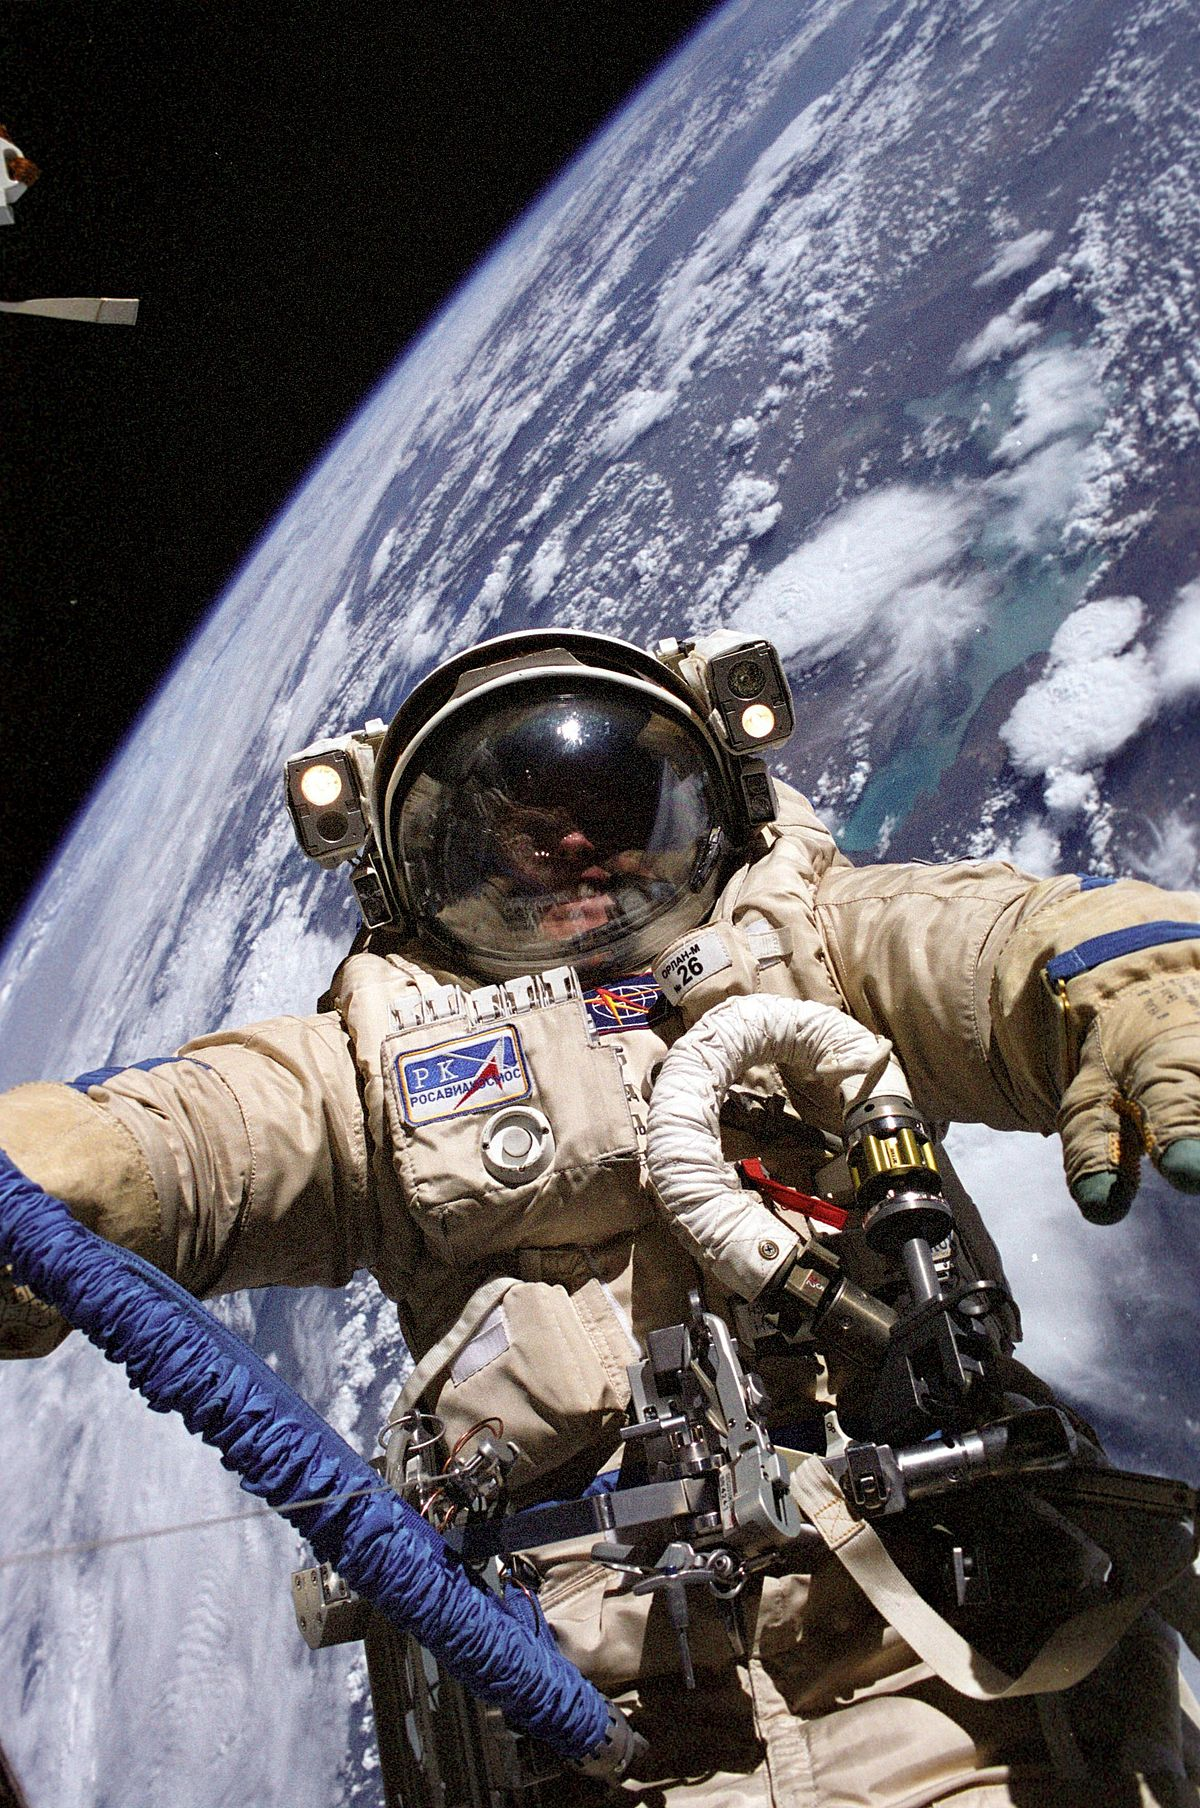 astronaut space suit - photo #15